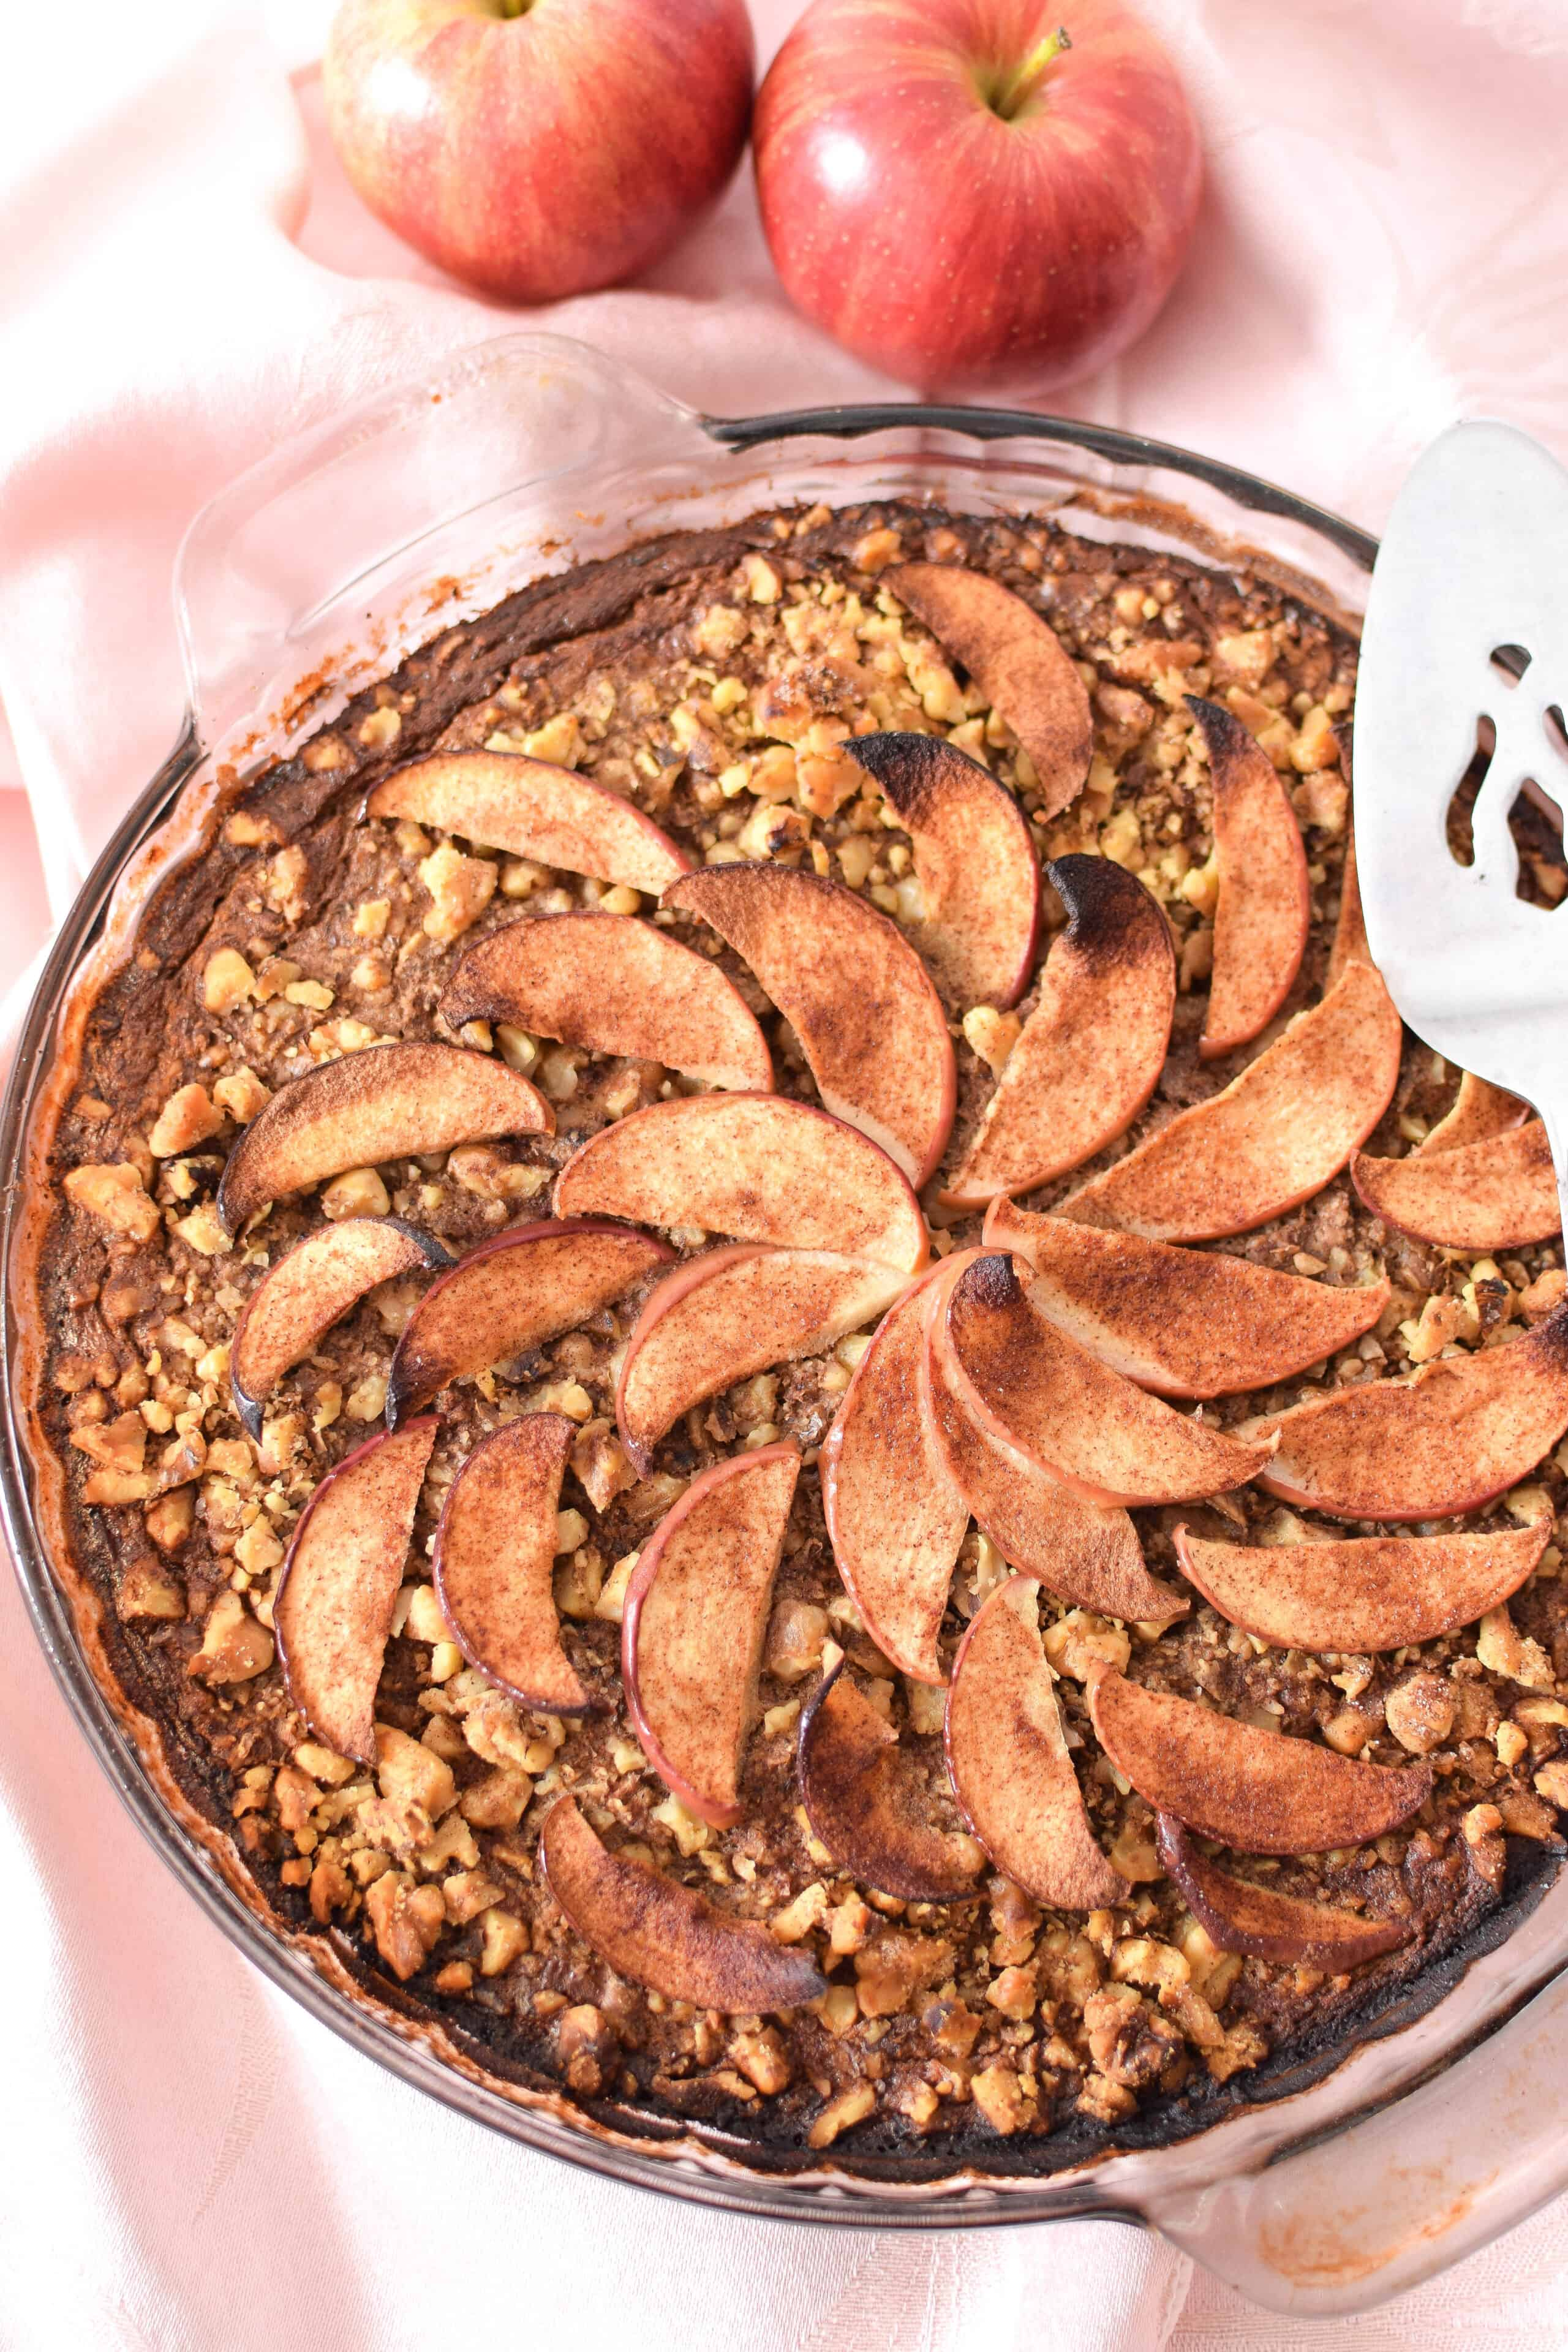 Apple & Cinnamon Baked Oatmeal Cake